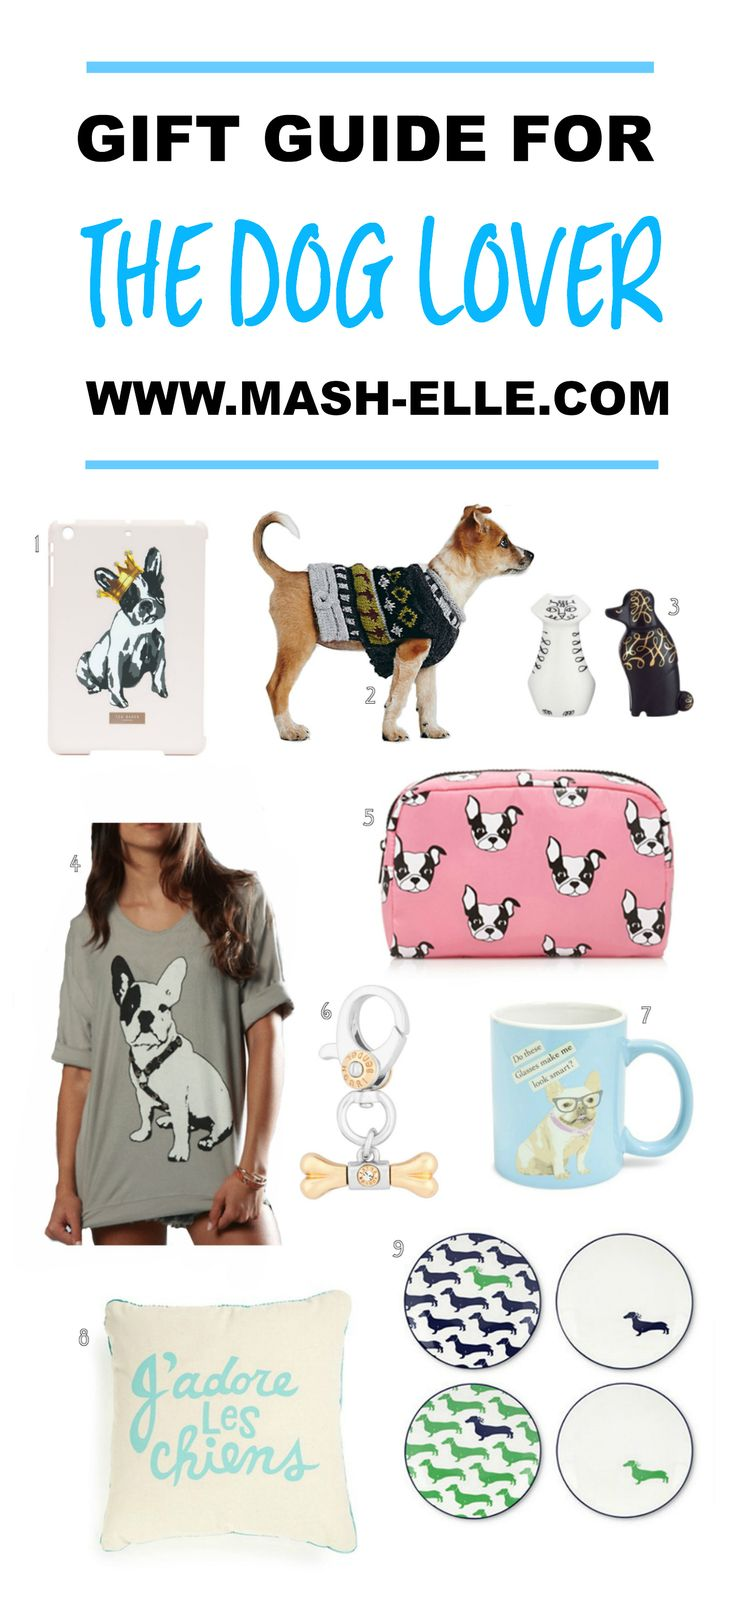 A complete gift guide for all the dog lovers in your life! From dog patterned decor to dog sweaters, this list has it all!